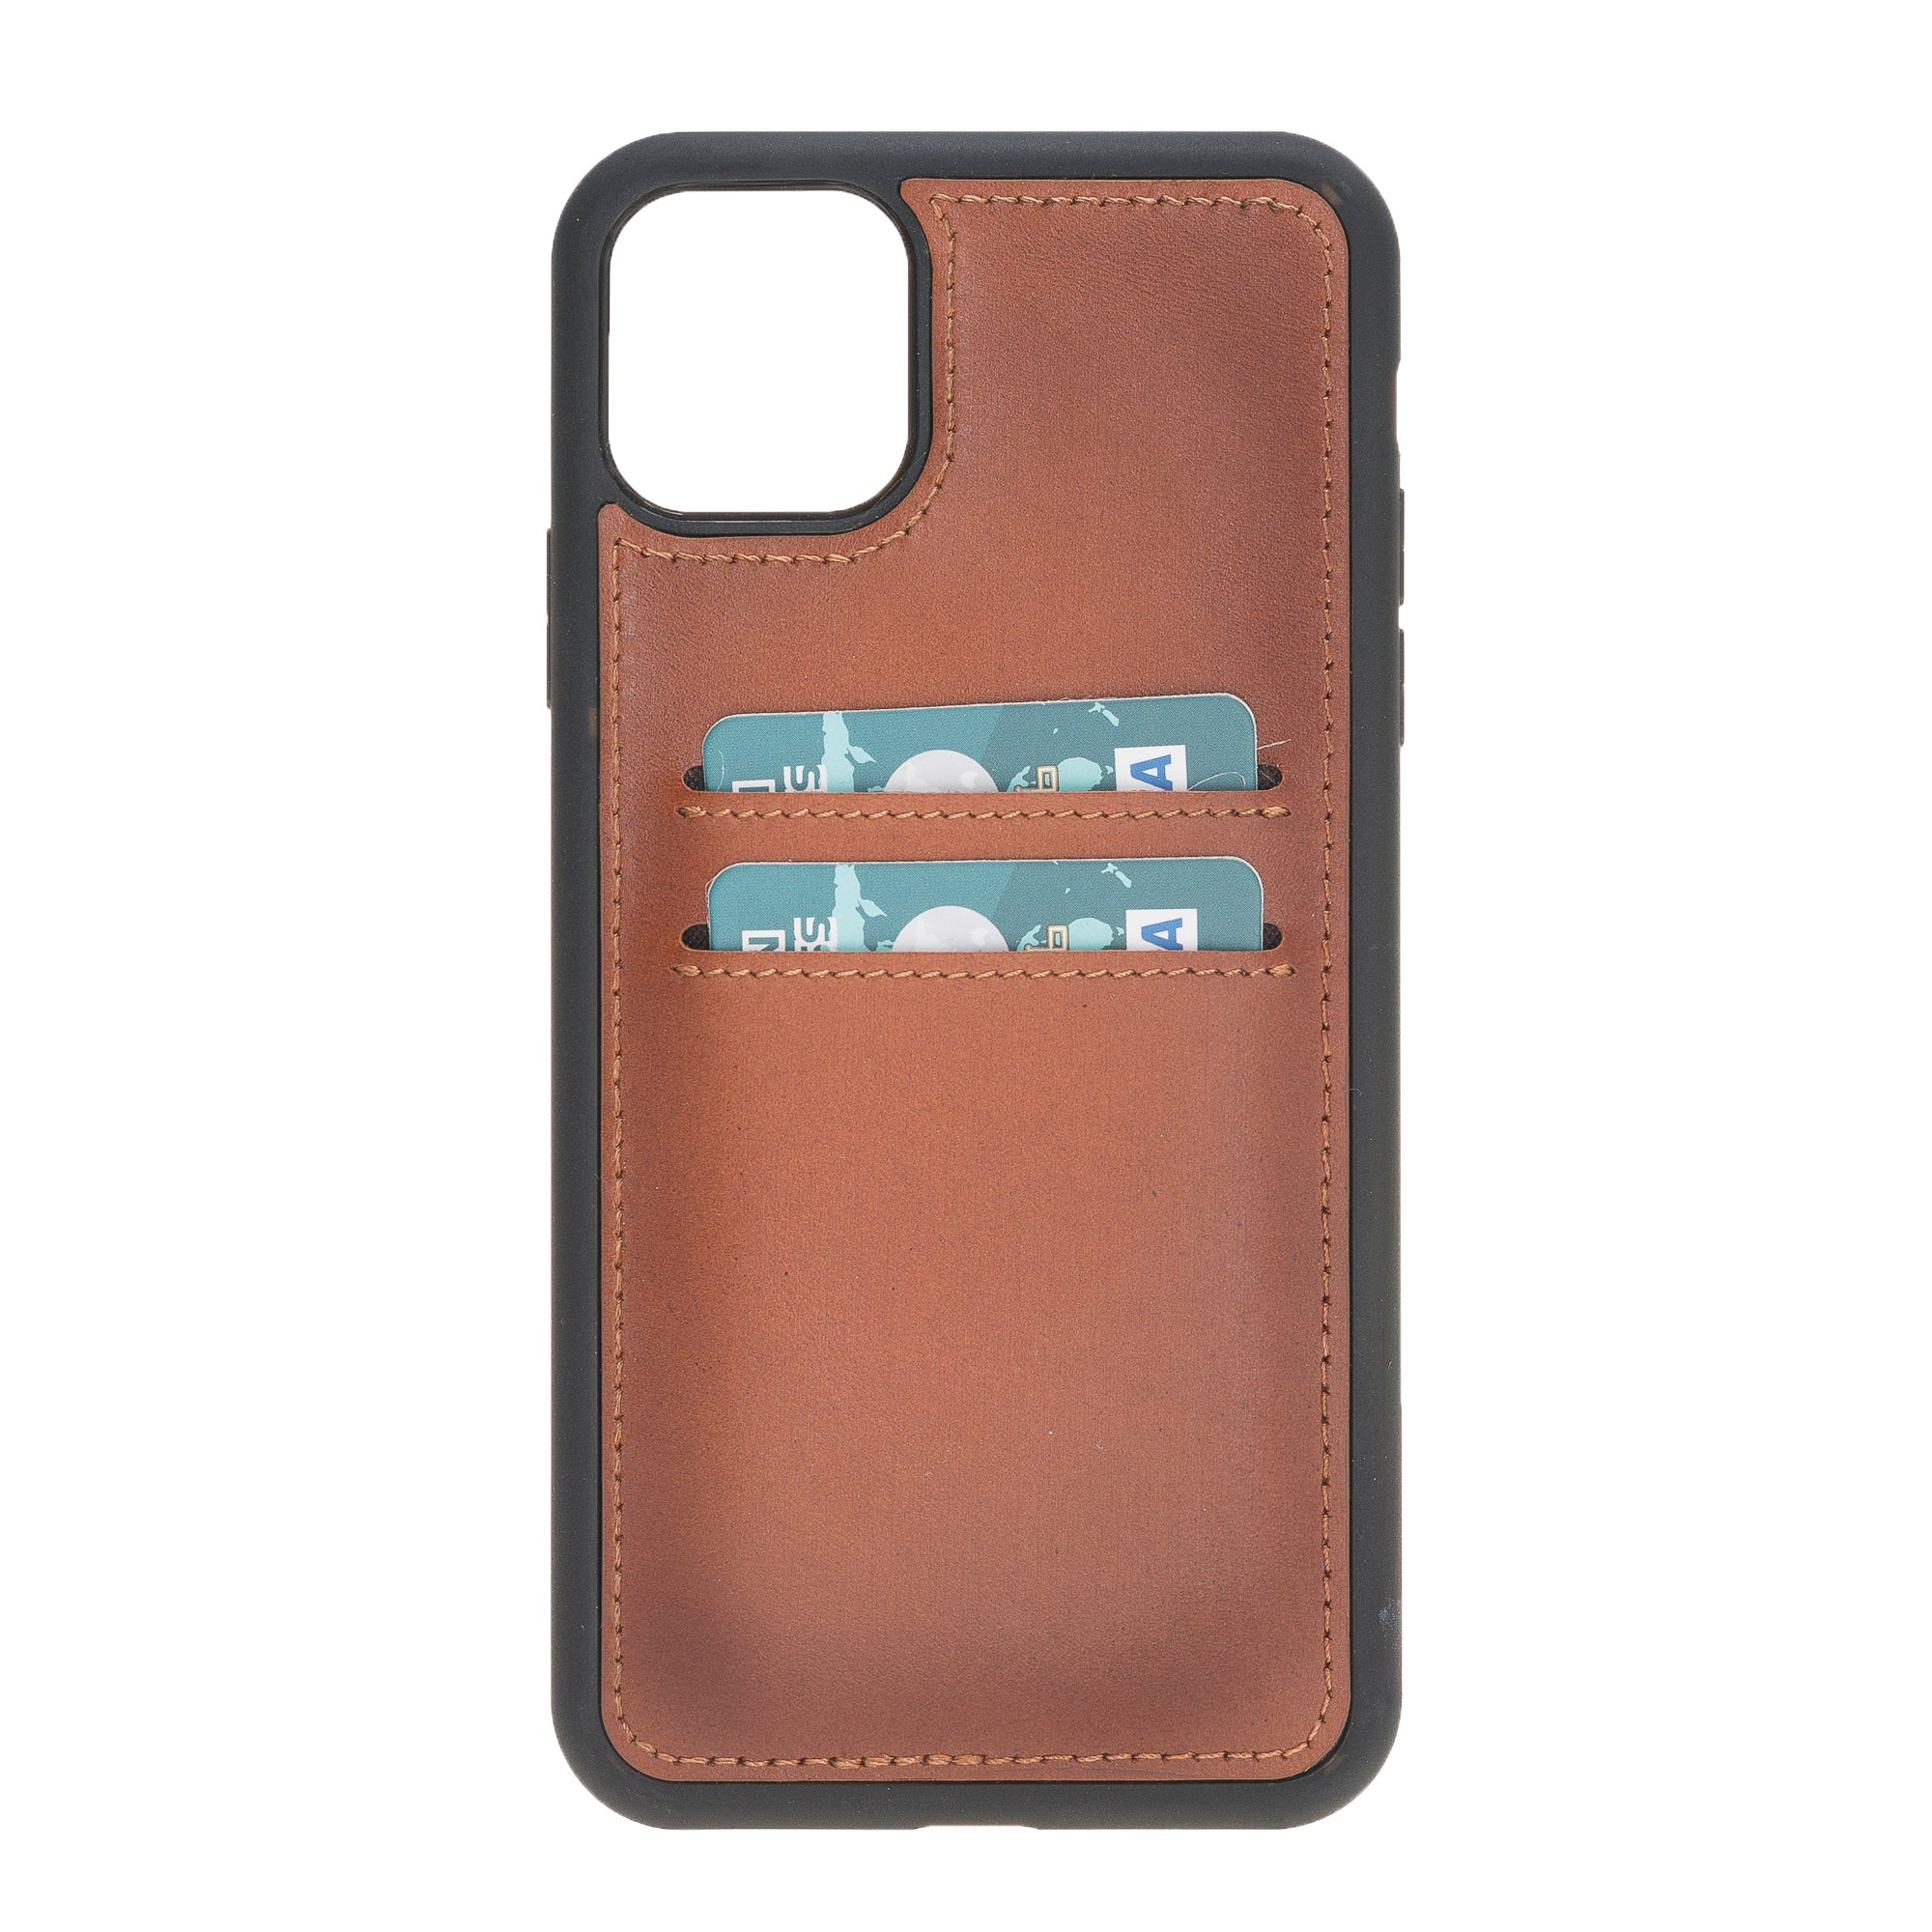 "Brown Burnished Apple iPhone 11 PRO MAX (6.5"") Leather Case w/ Card Slots"